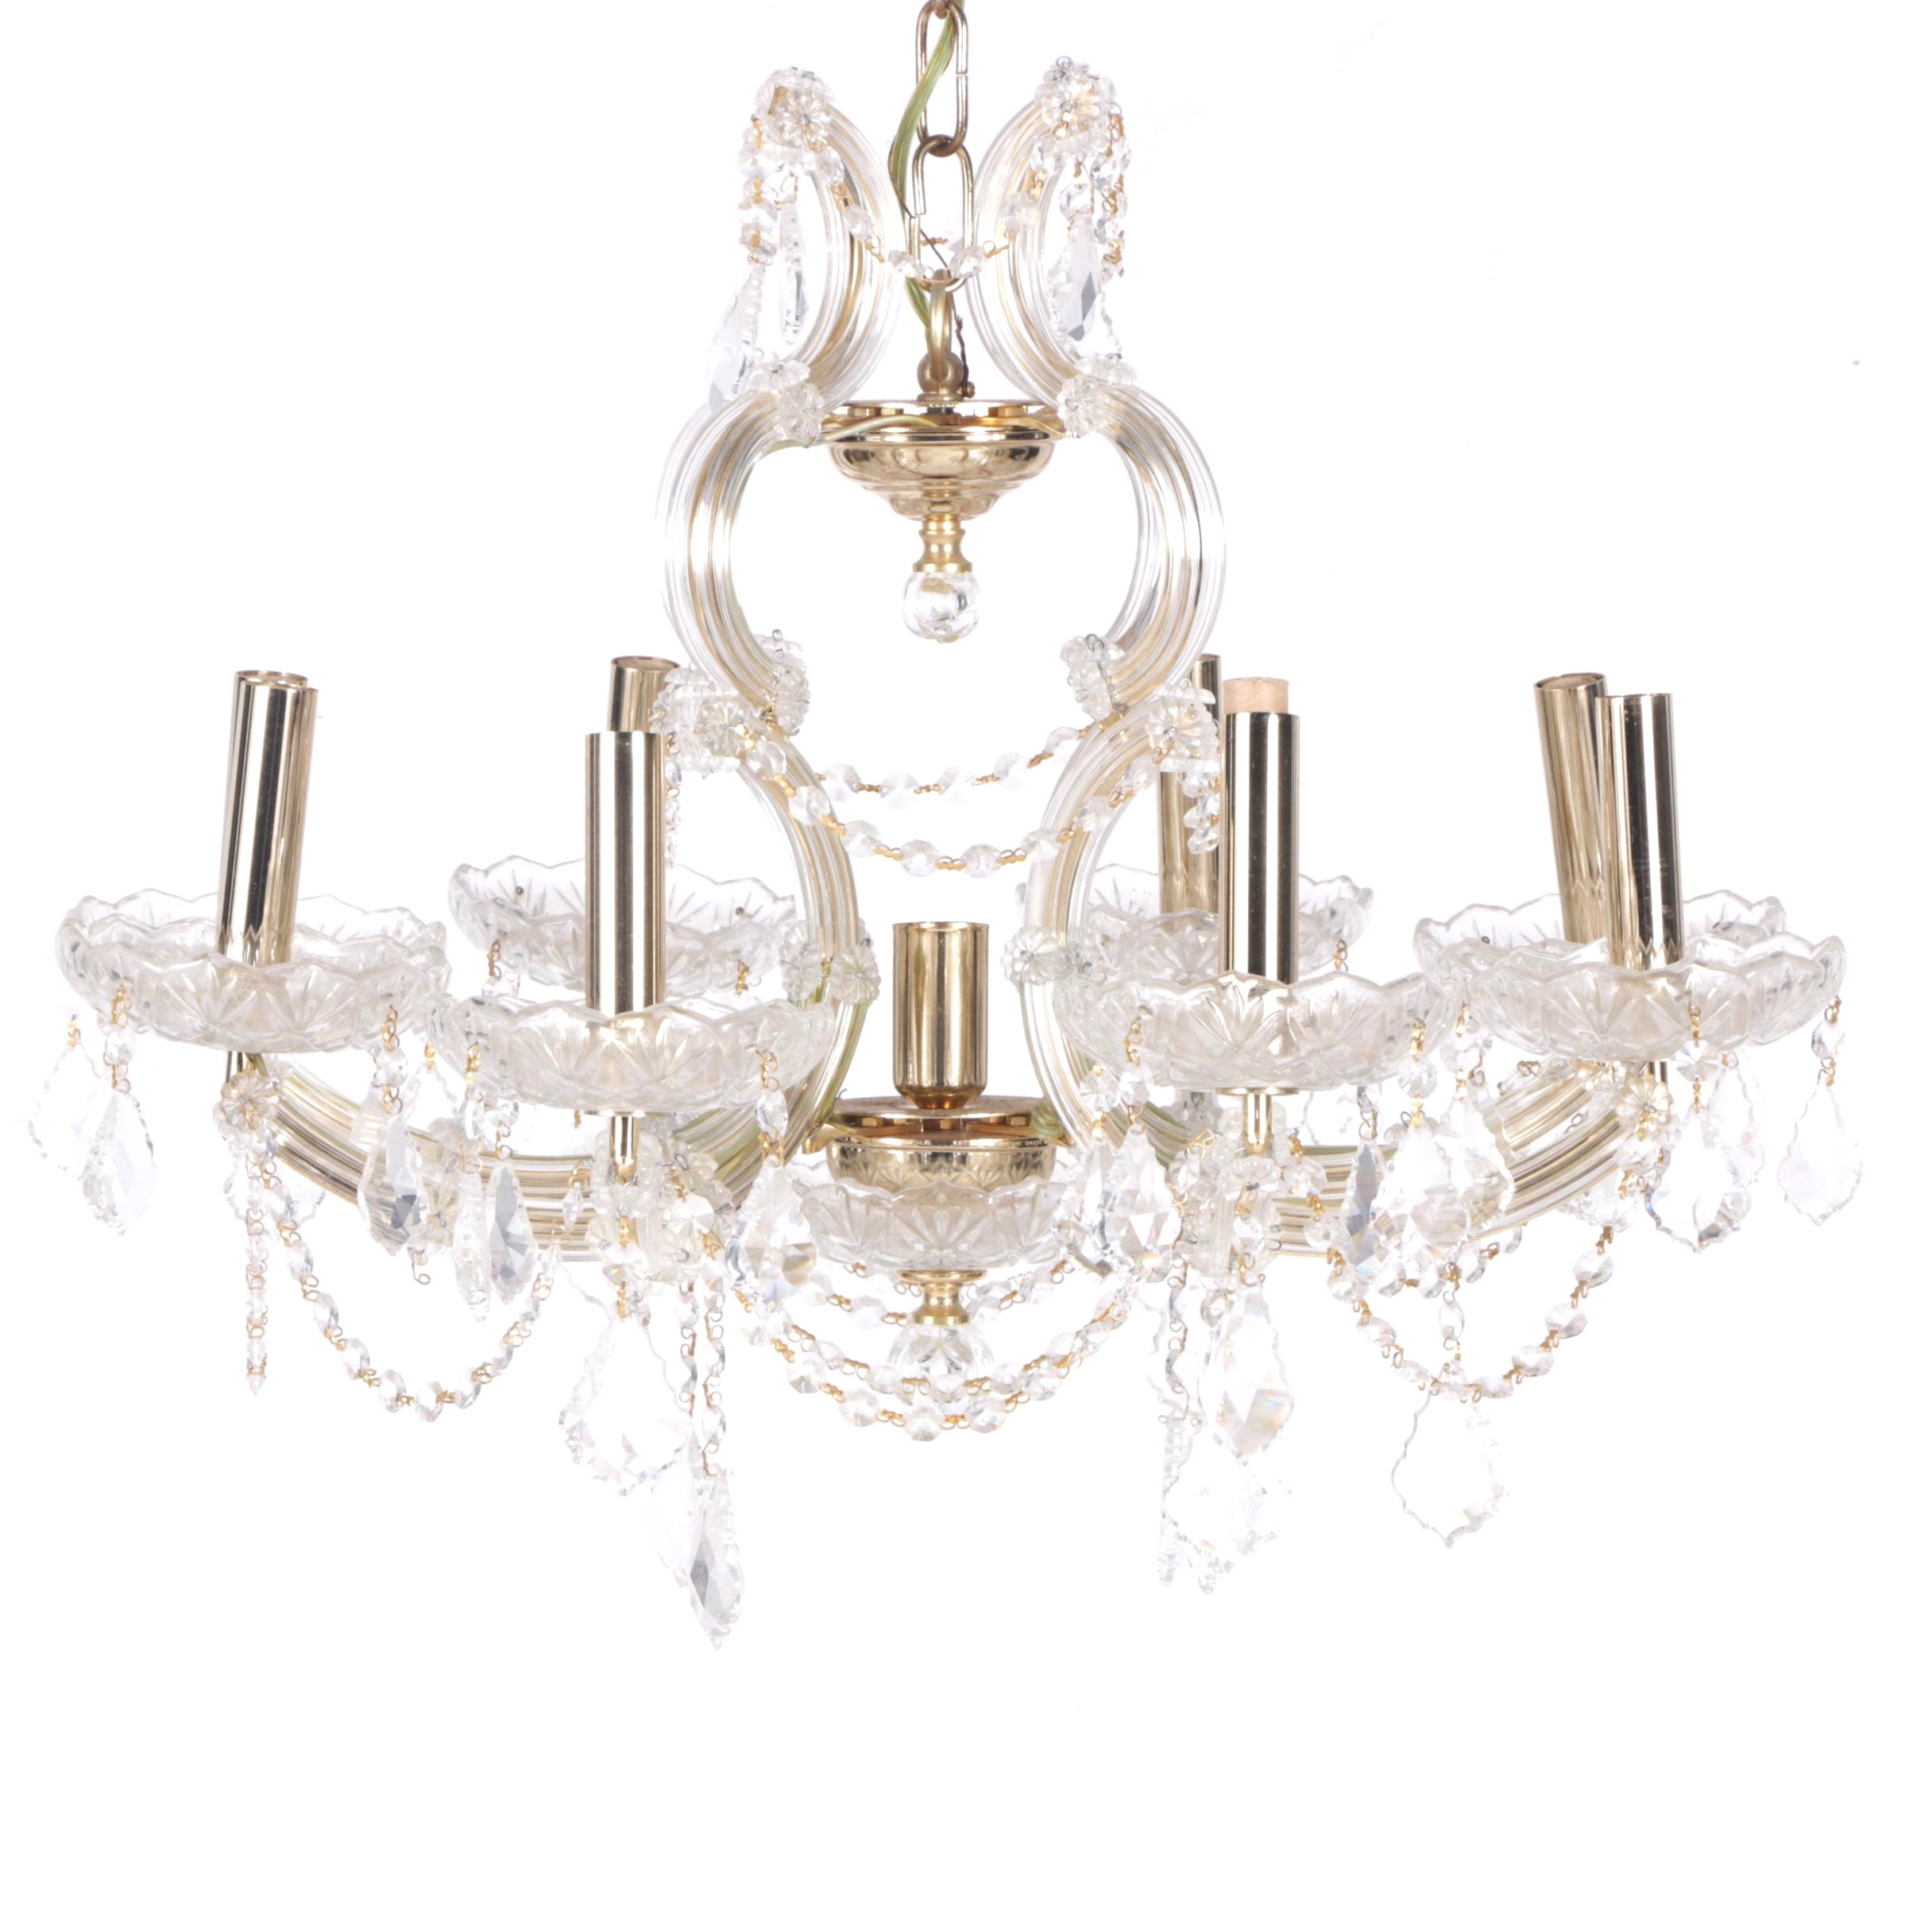 Spanish Crystal, Glass and Brass Chandelier